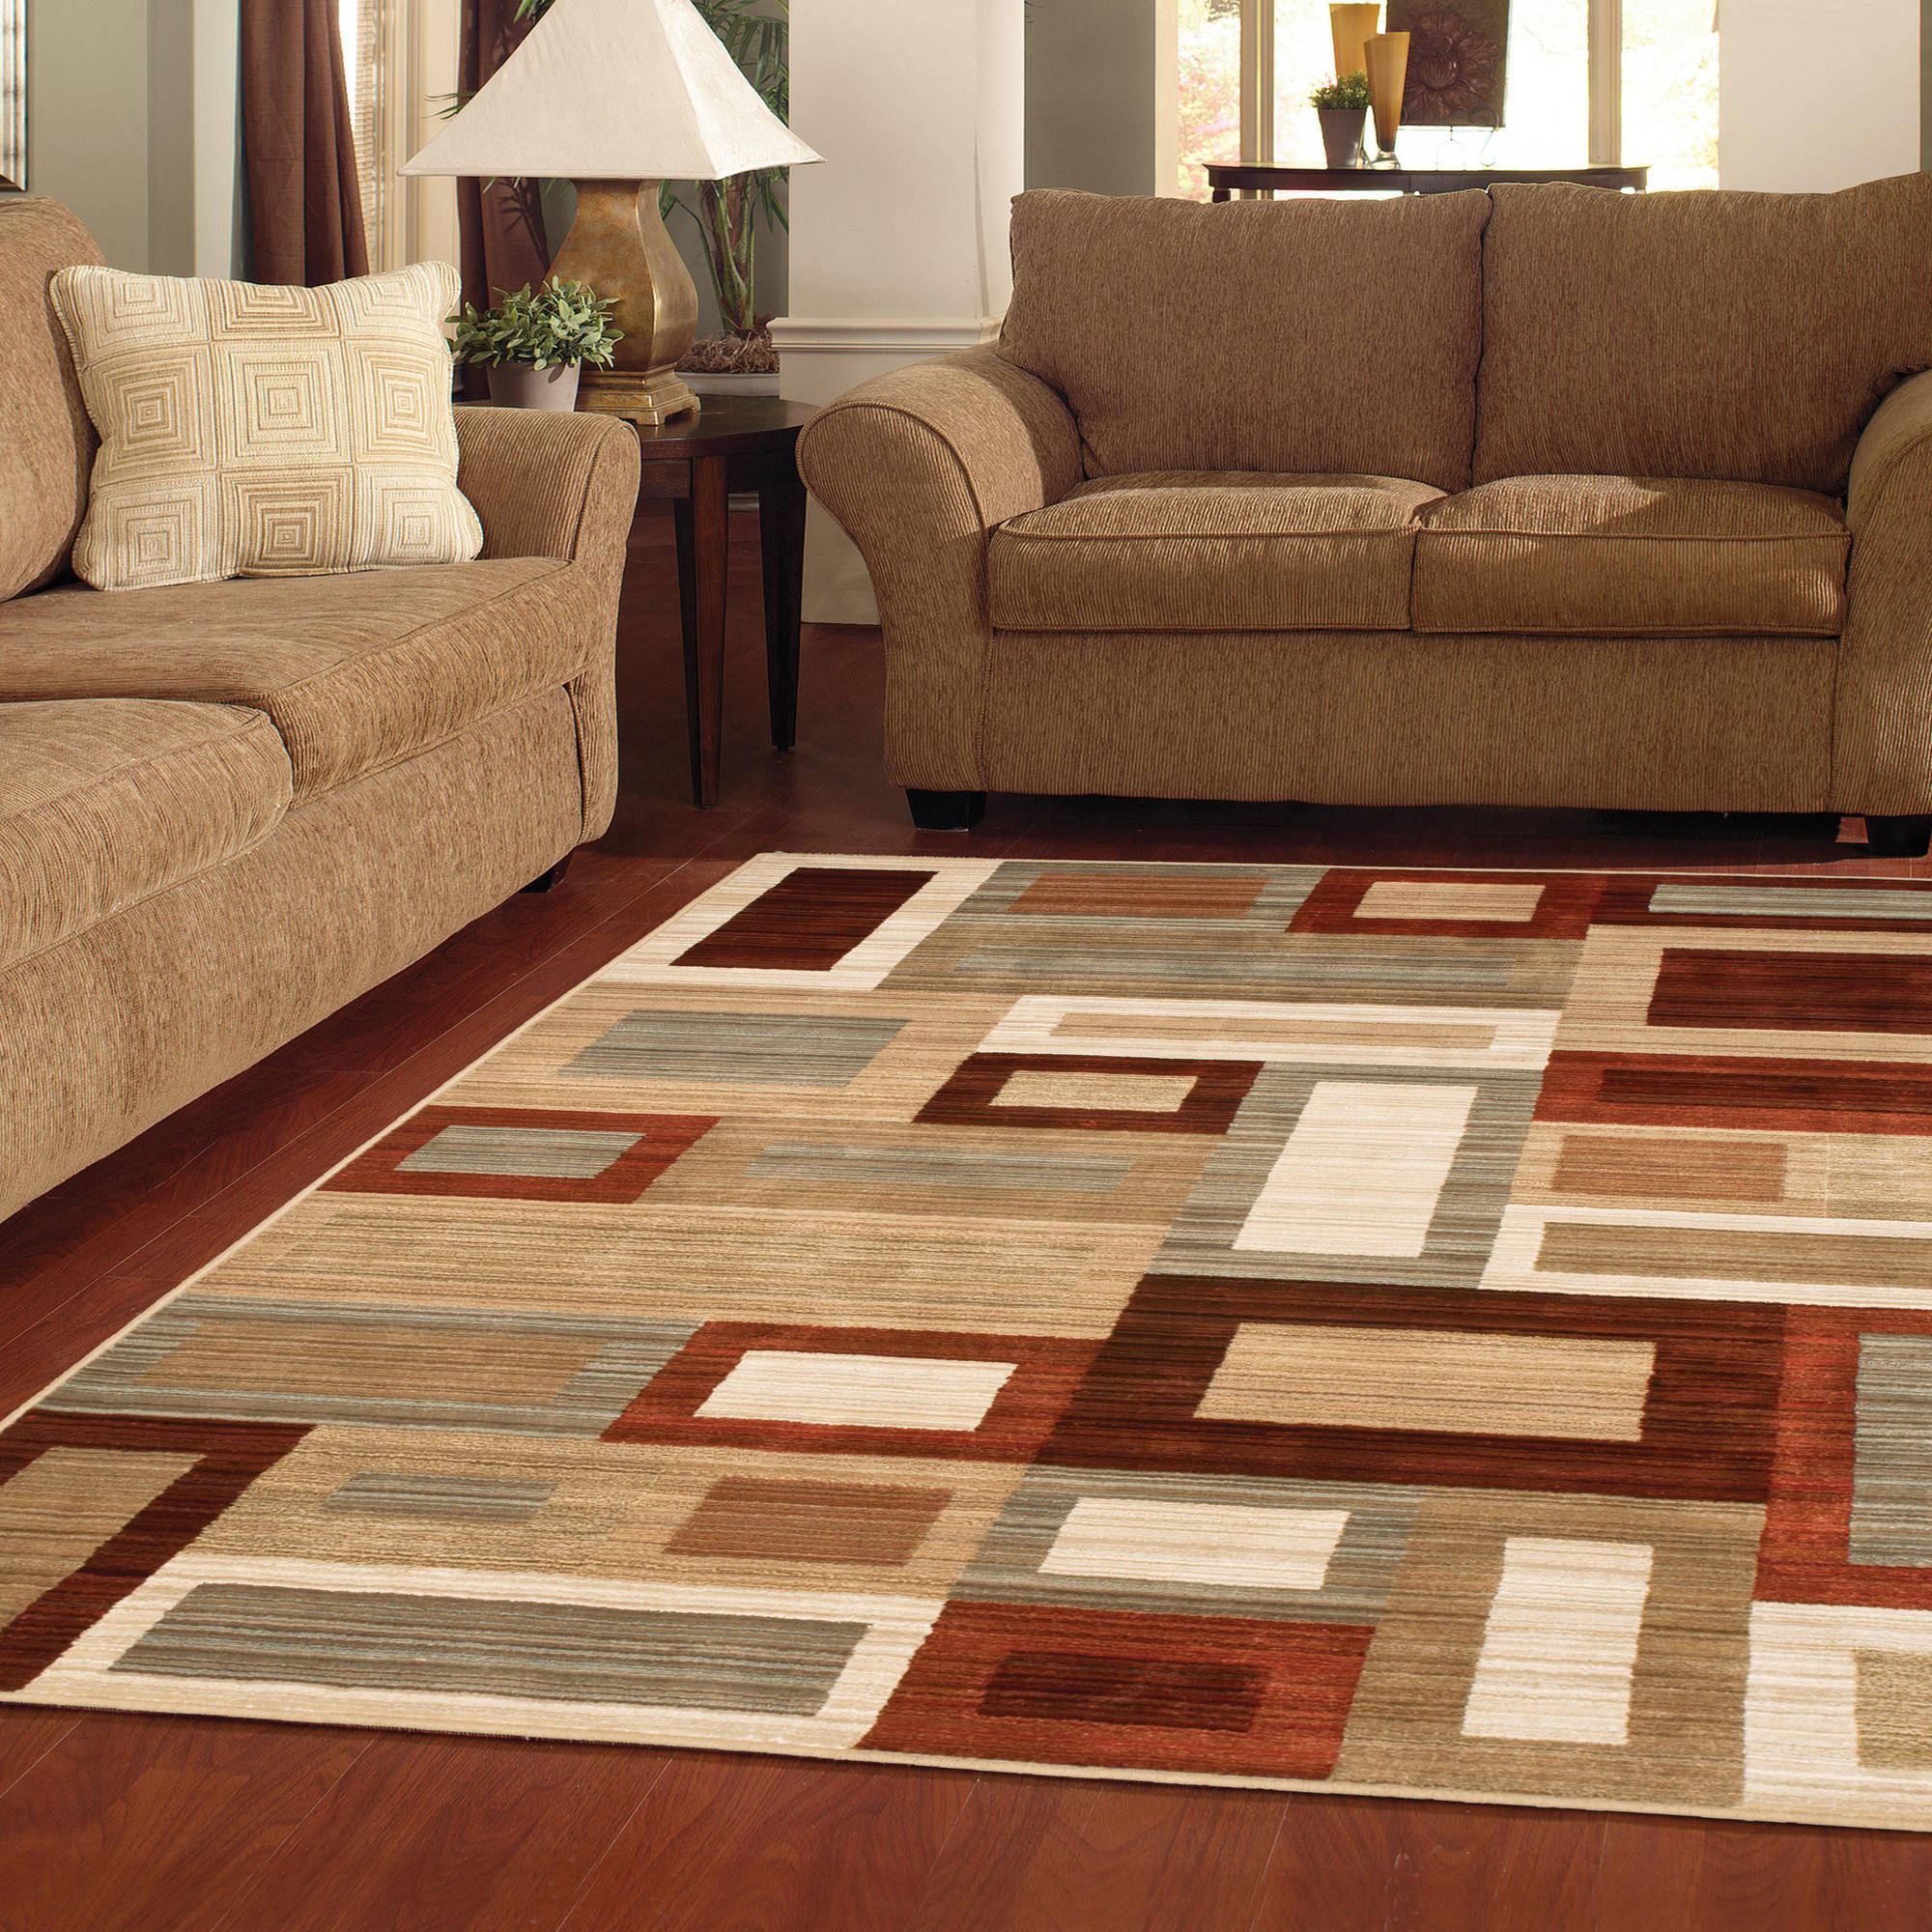 area carpet better homes and gardens franklin squares area rug or runner - walmart.com KWGXVVS